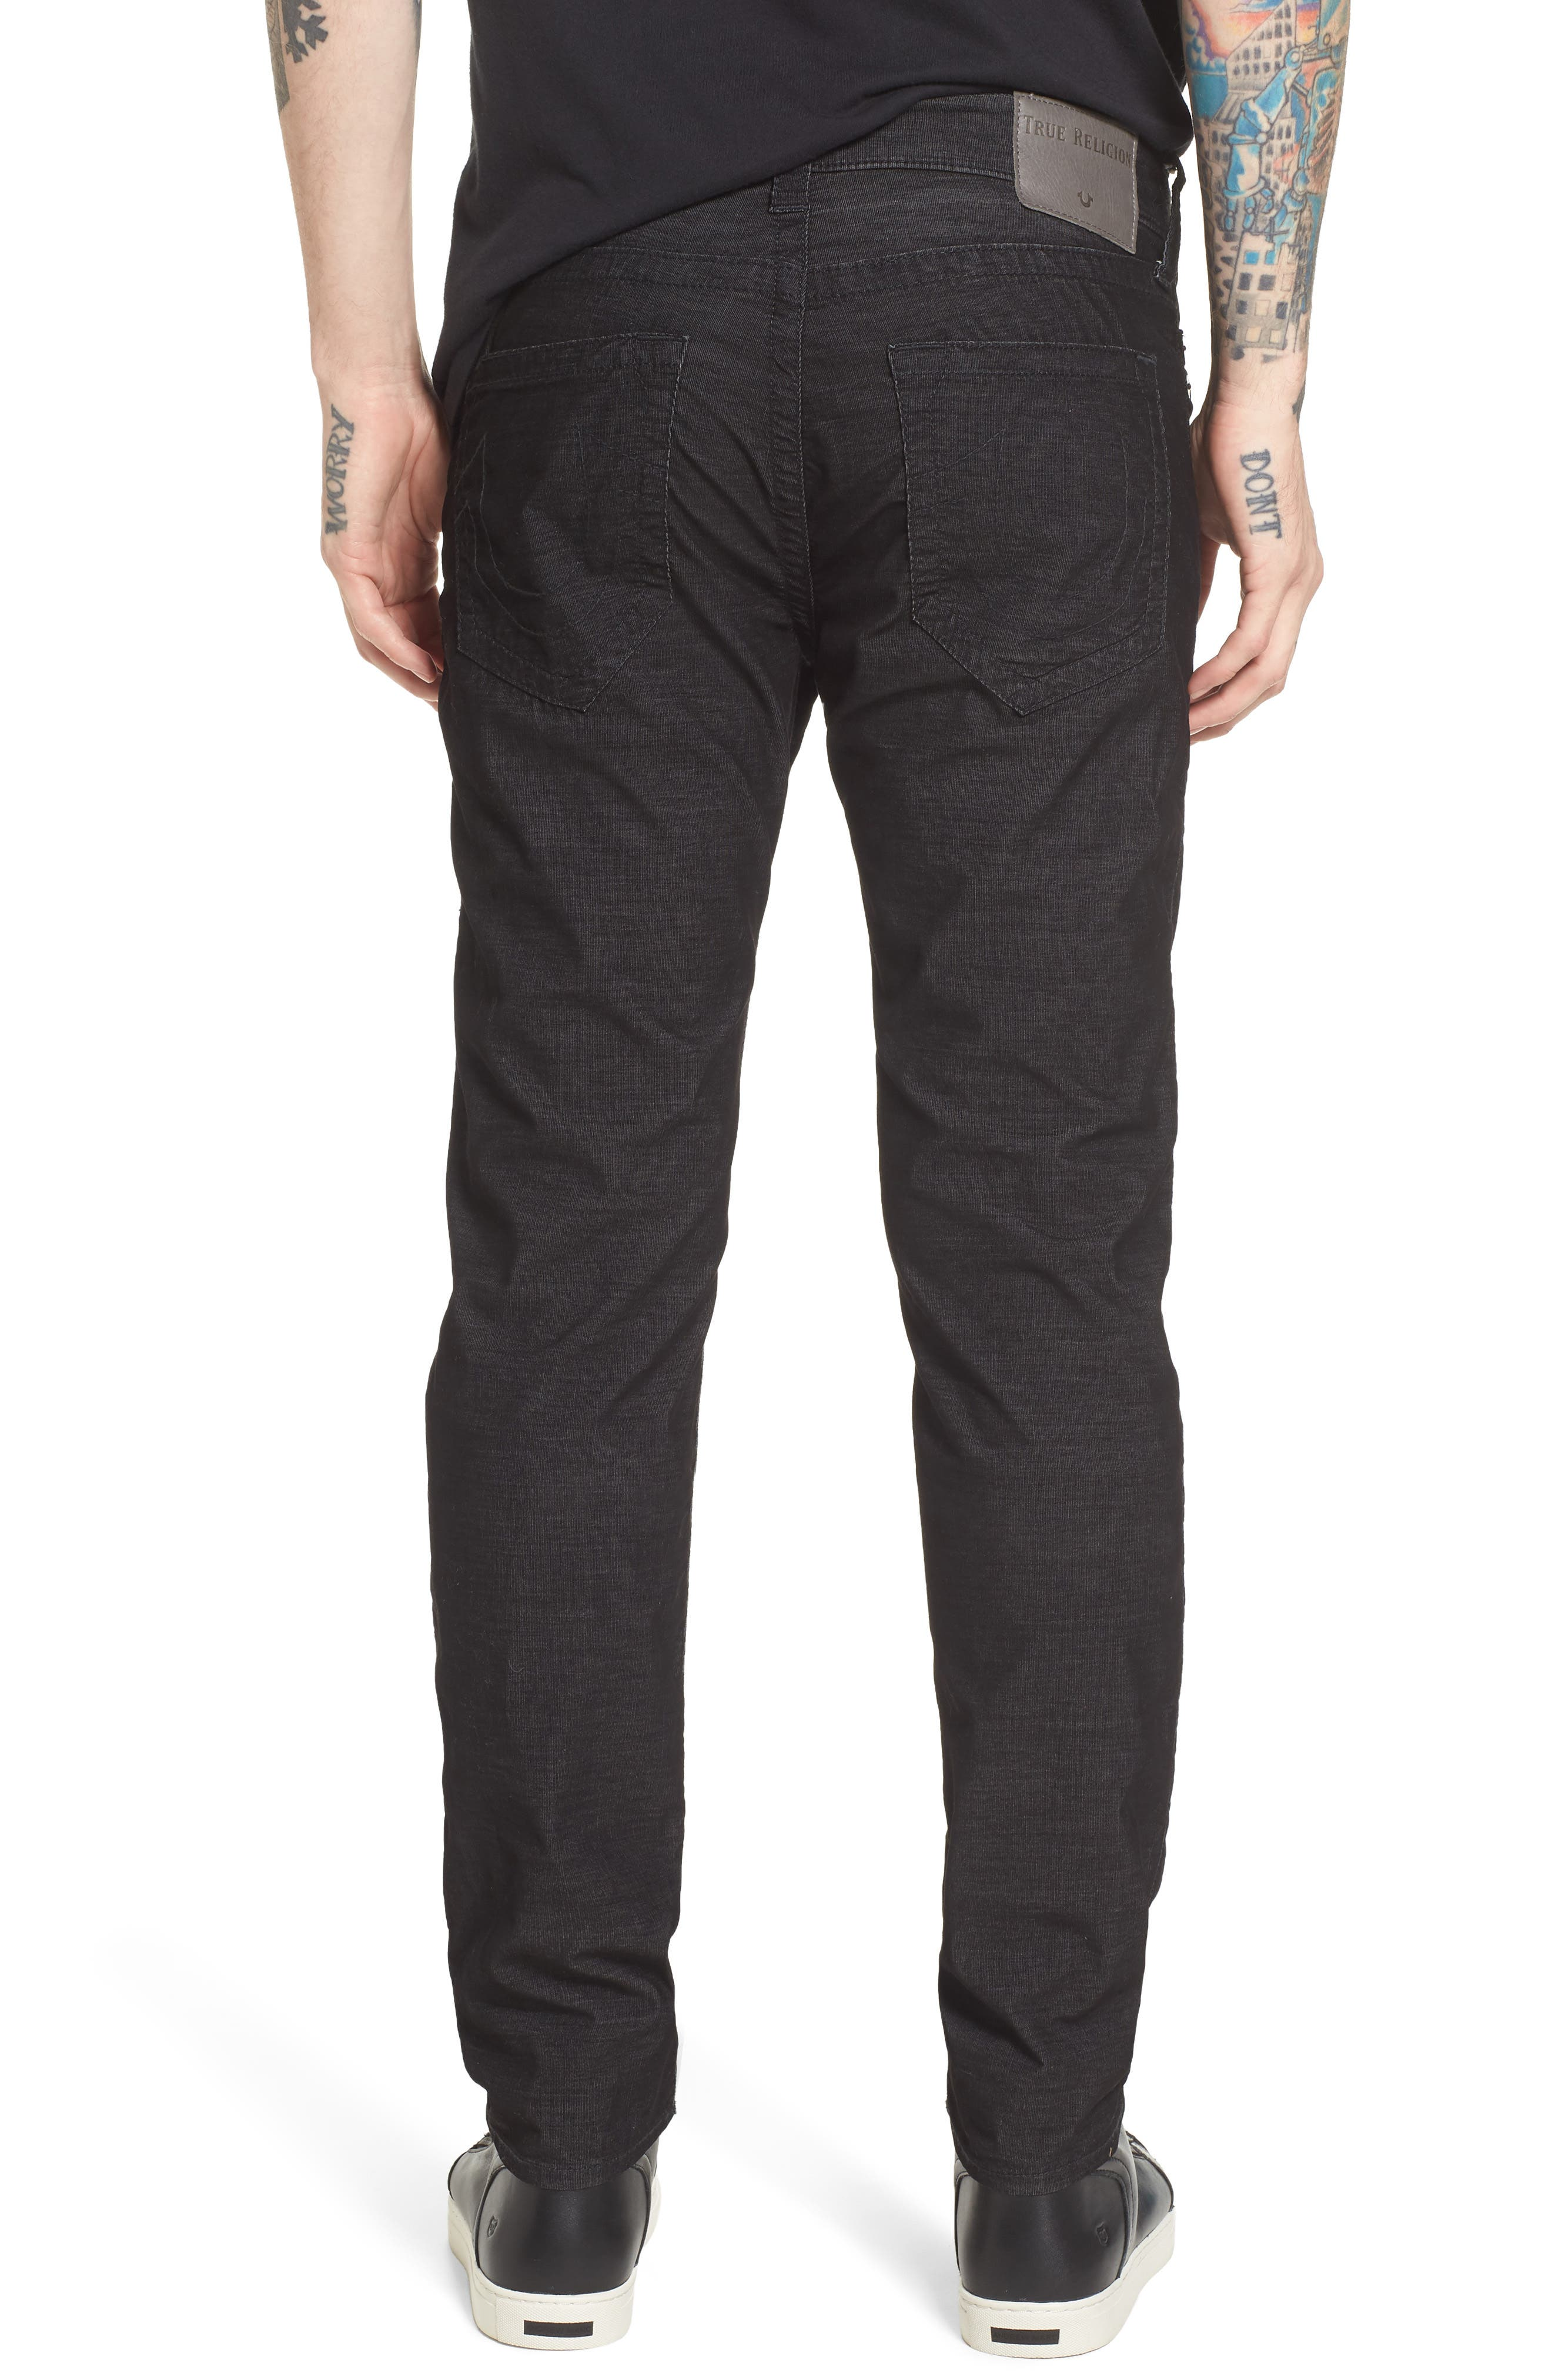 Rocco Skinny Fit Corduroy Jeans,                             Alternate thumbnail 2, color,                             001